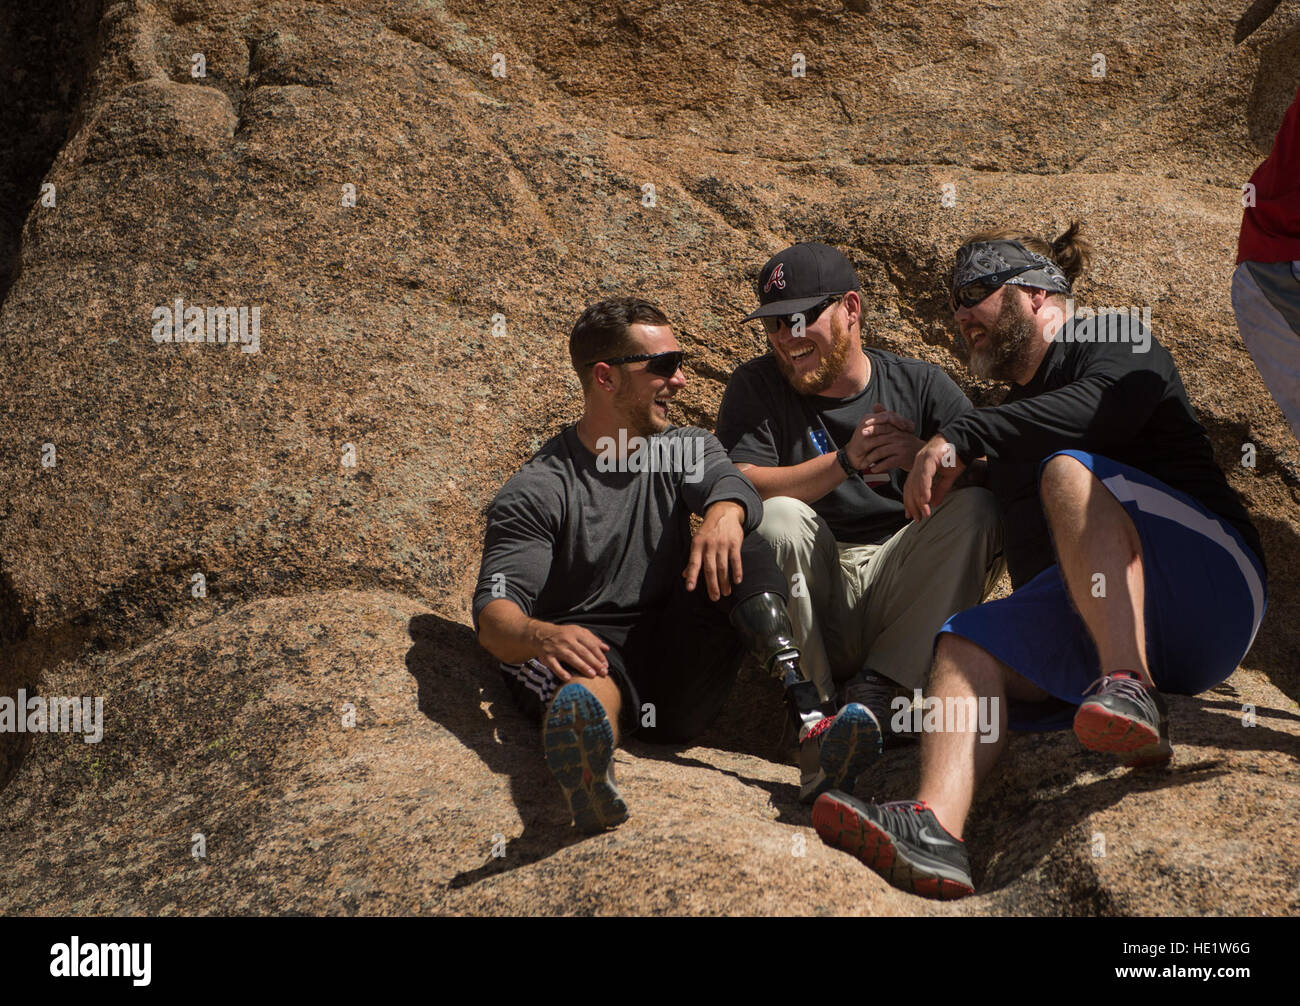 U.S. Air Force Staff Sgt. Gideon Connelly, Staff Sgt. Ret. Richard W. Rose Jr., and Master Sgt. Ret. Corey Jensen - Stock Image